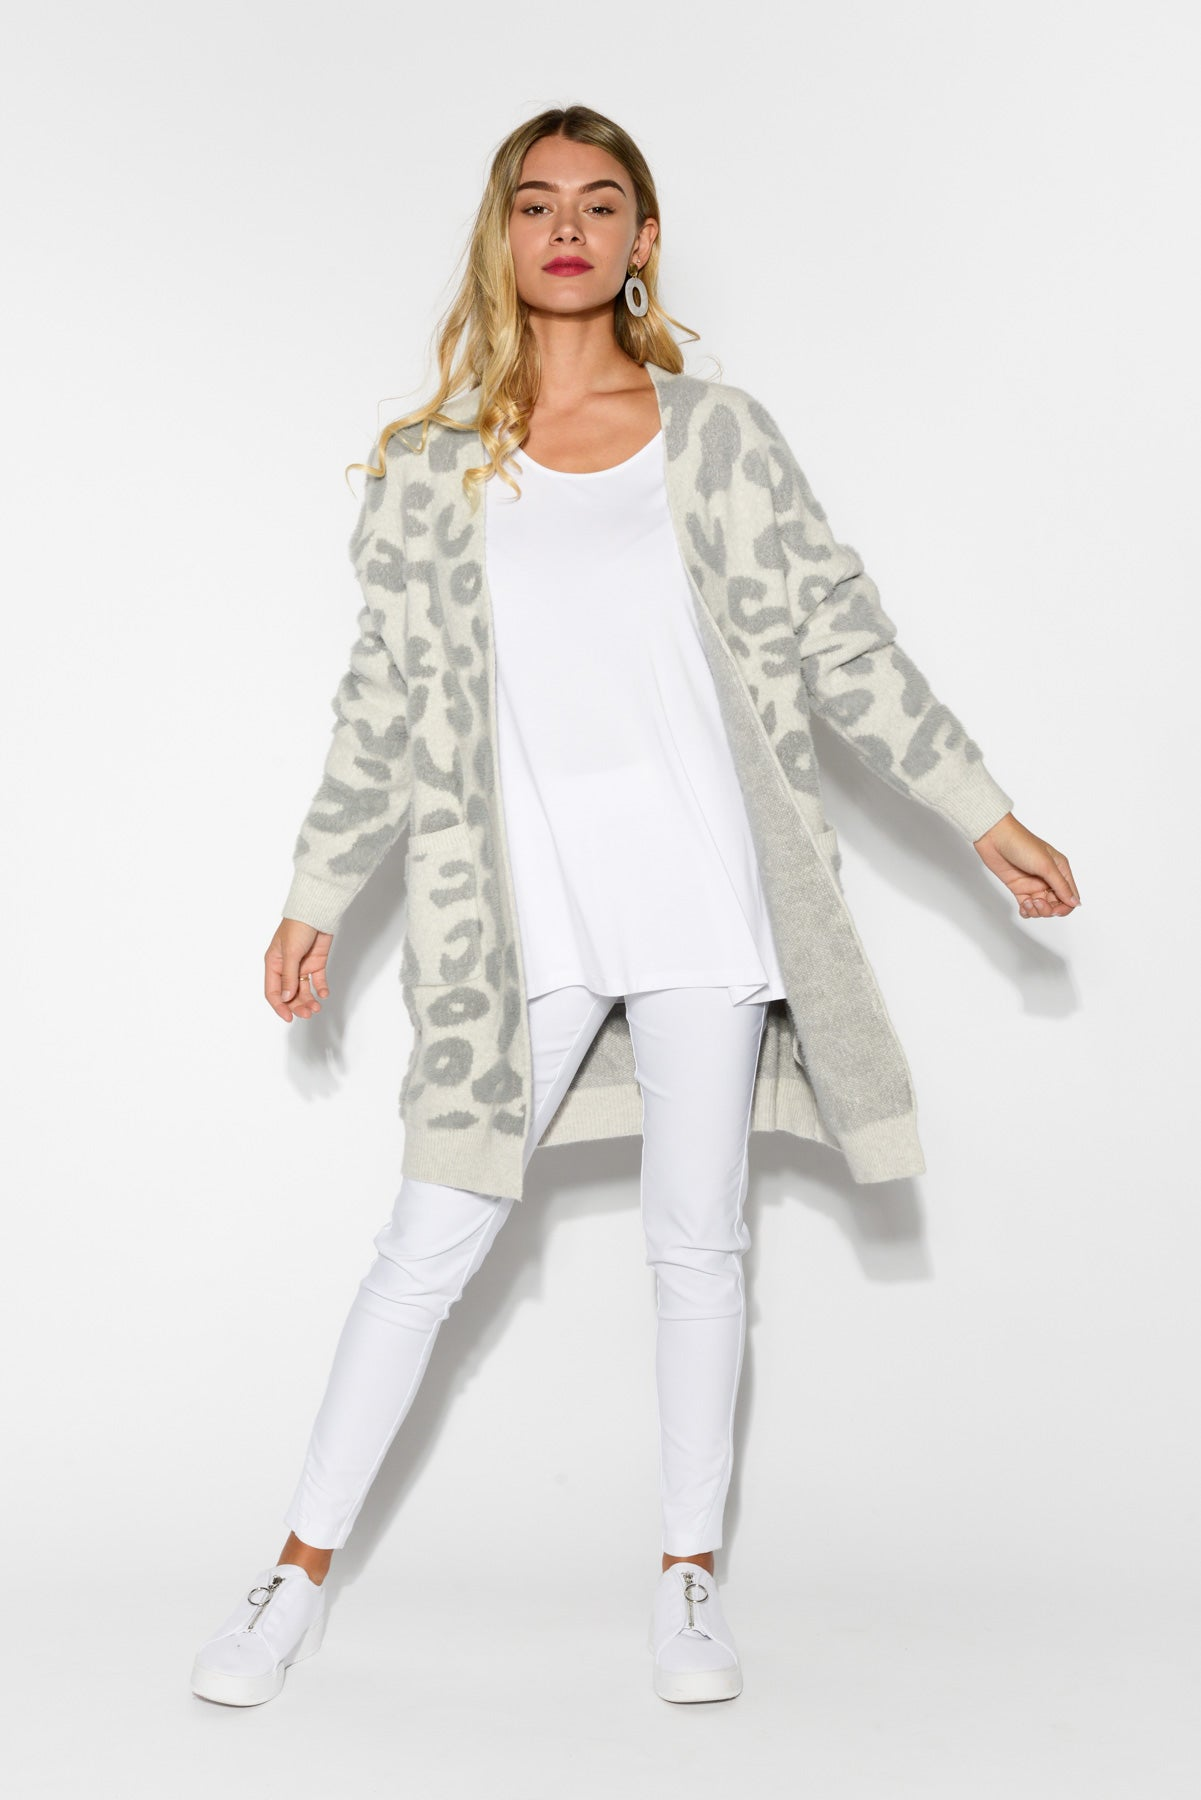 Astrid Grey Leopard Knit Cardigan - Blue Bungalow